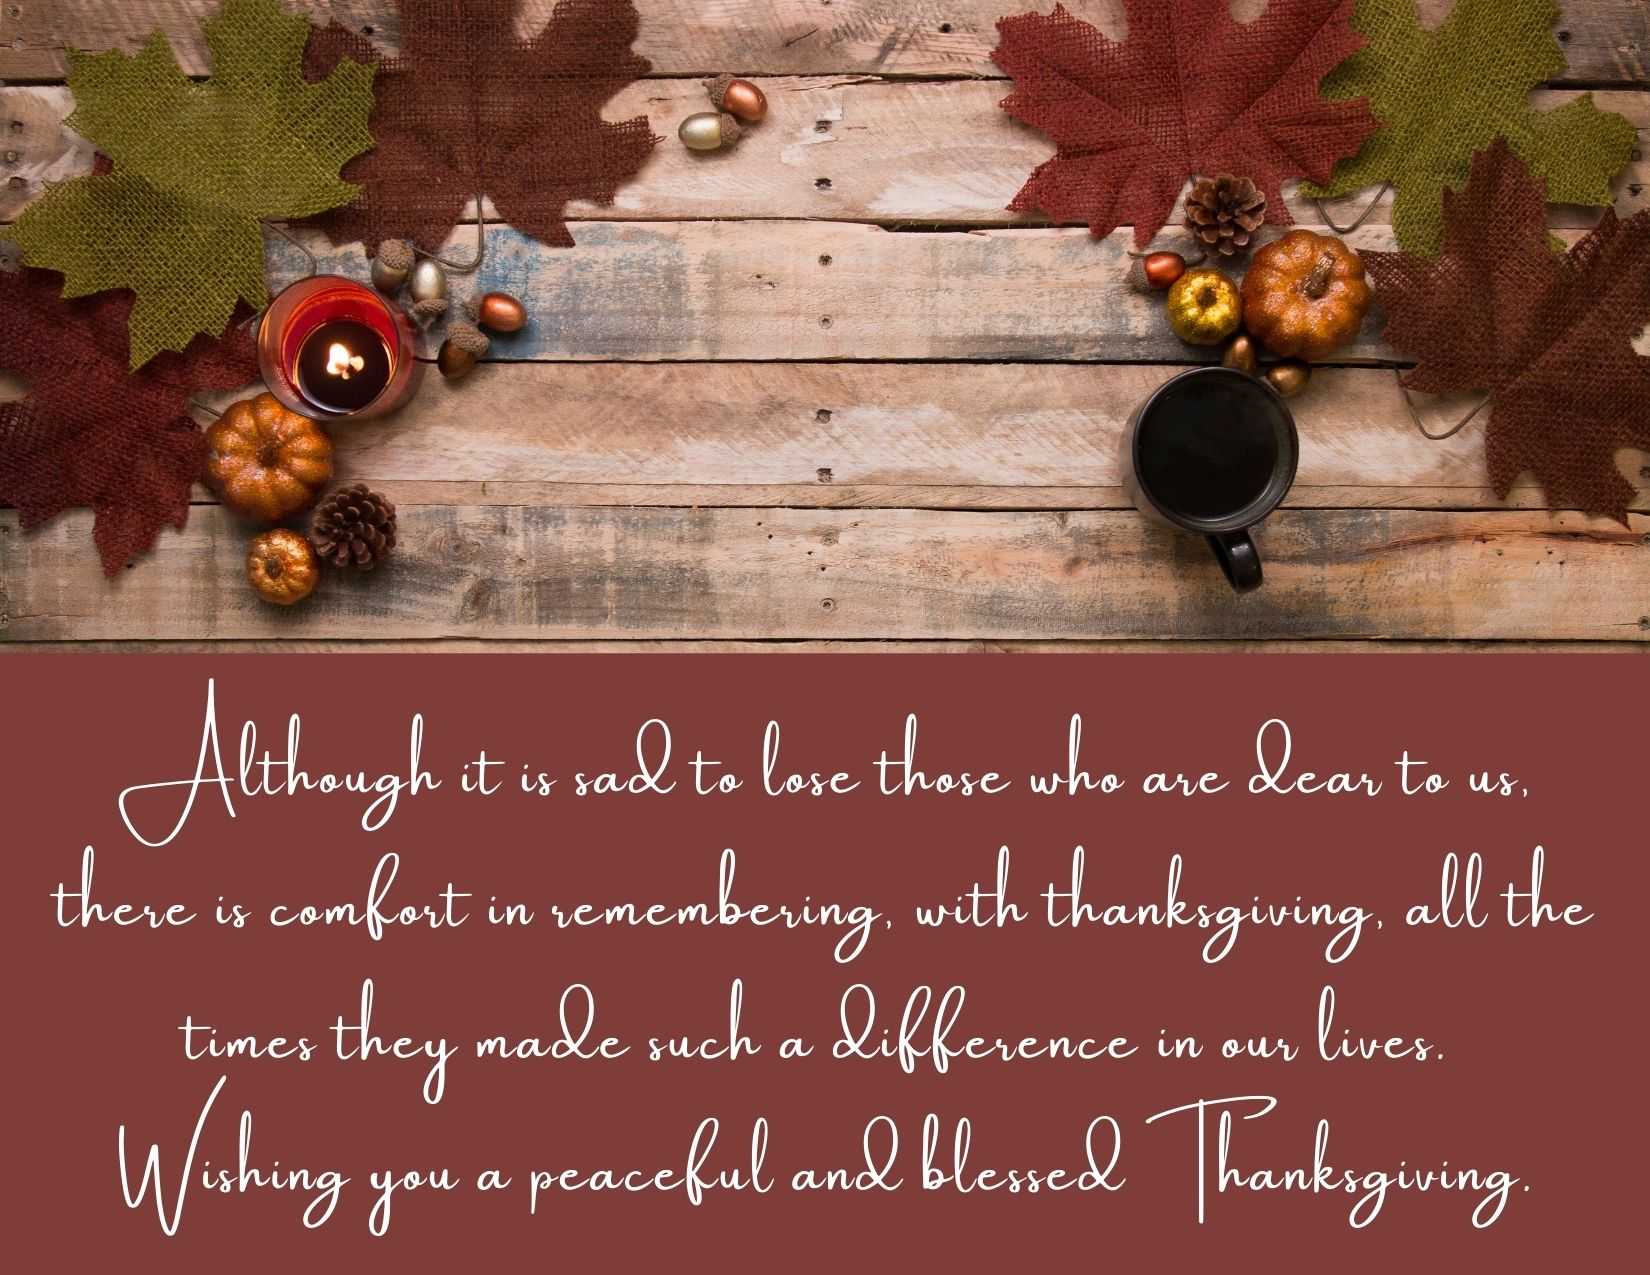 TEXT: Although it is sad to lose those who are dear to us, there is comfort in remembering, with thanksgiving, all the times they made such a difference in our lives. Wishing you a peaceful and blessed Thanksgiving. IMAGE: Table with autumn leaves and a candle